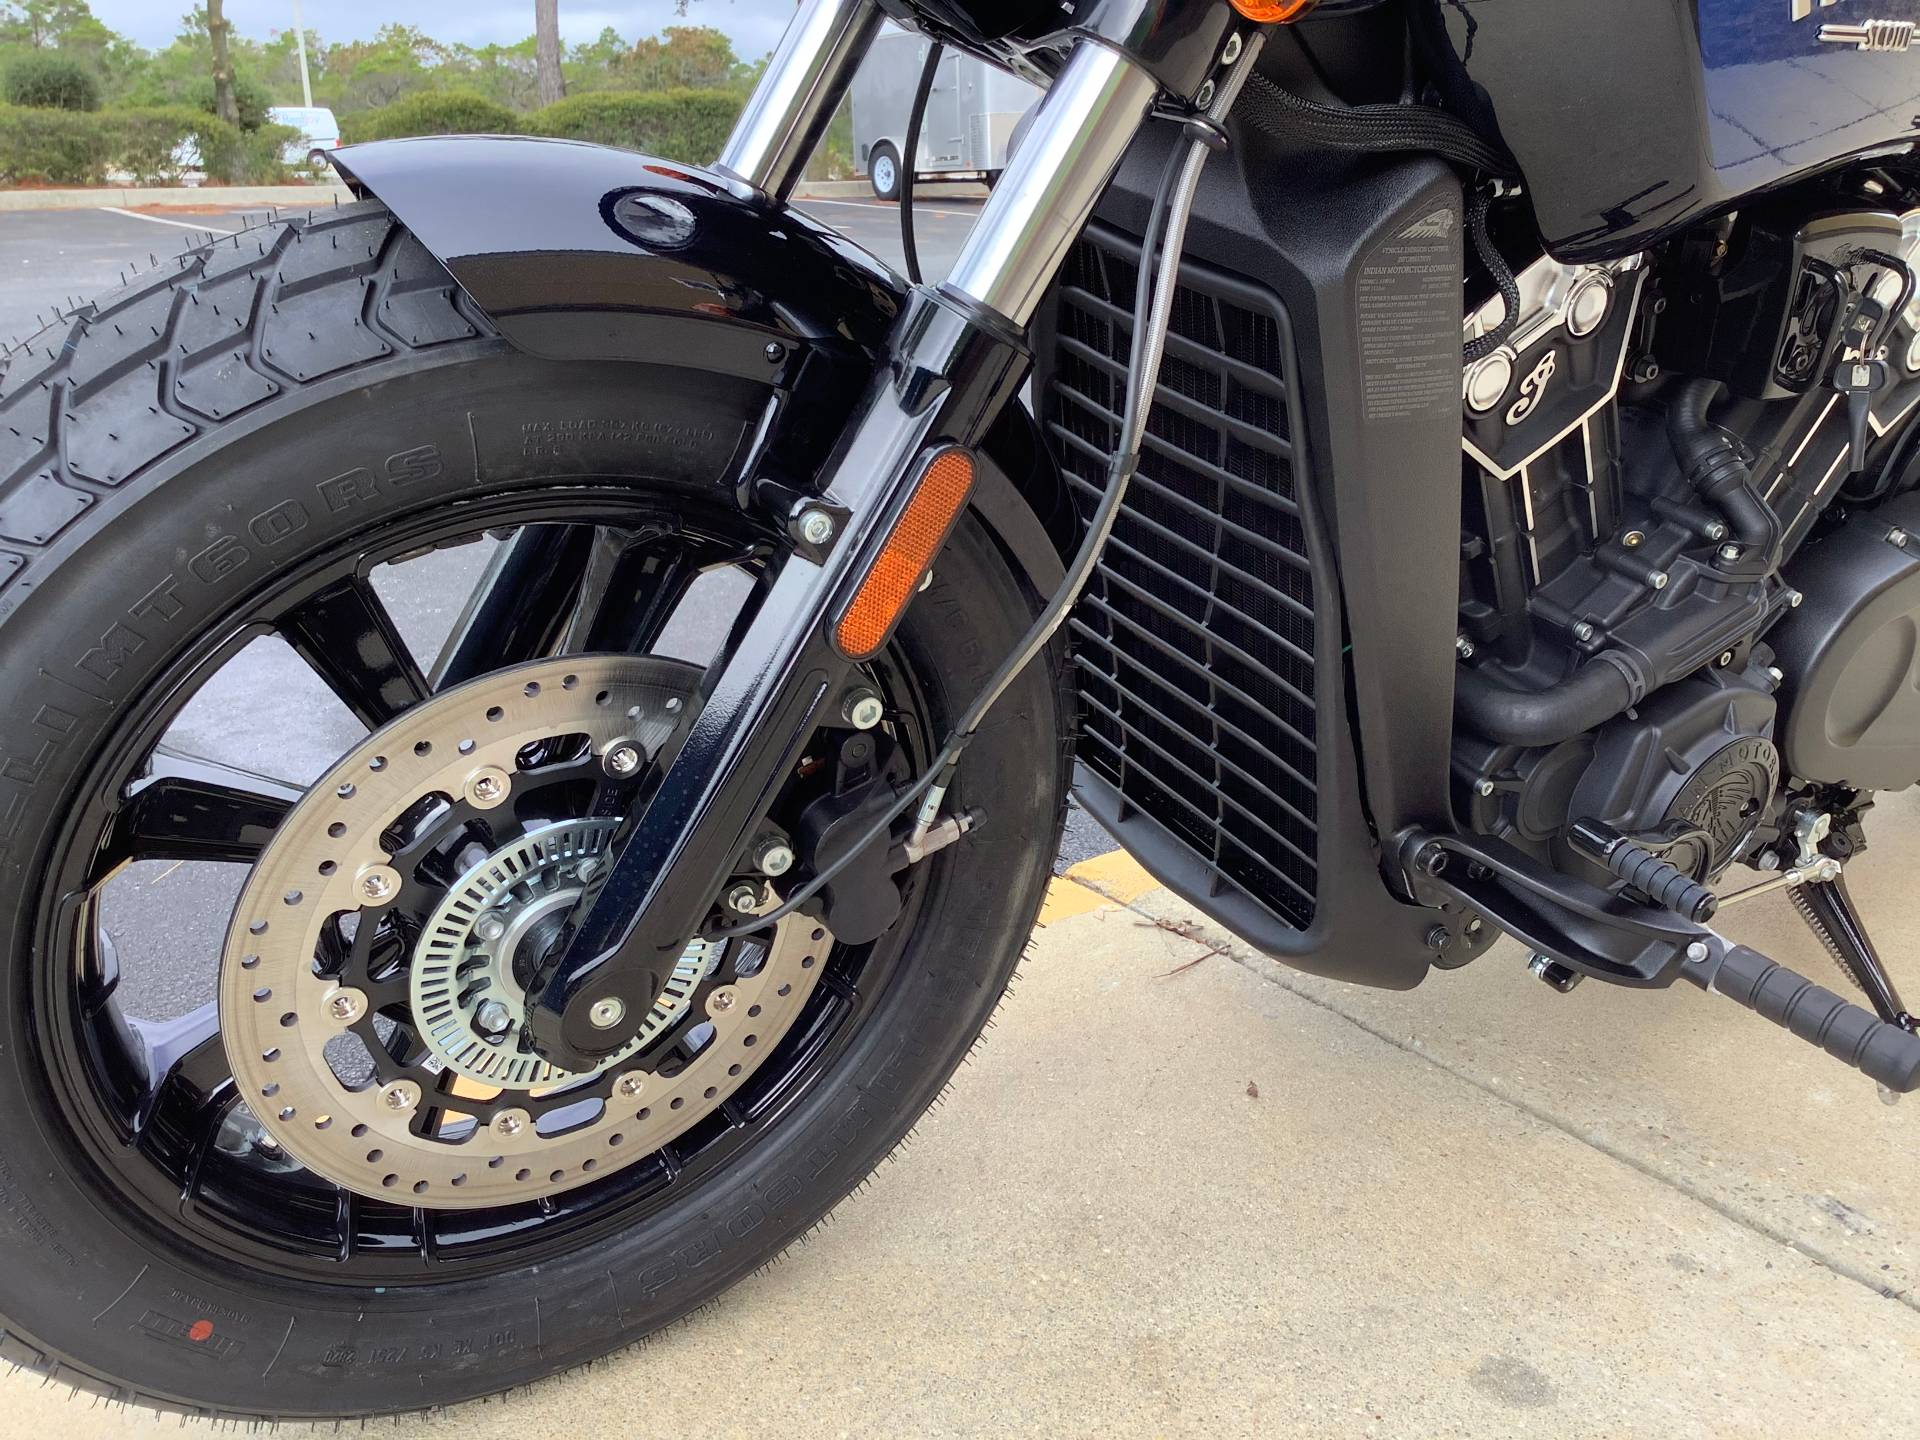 2021 Indian BOBBER in Panama City Beach, Florida - Photo 11